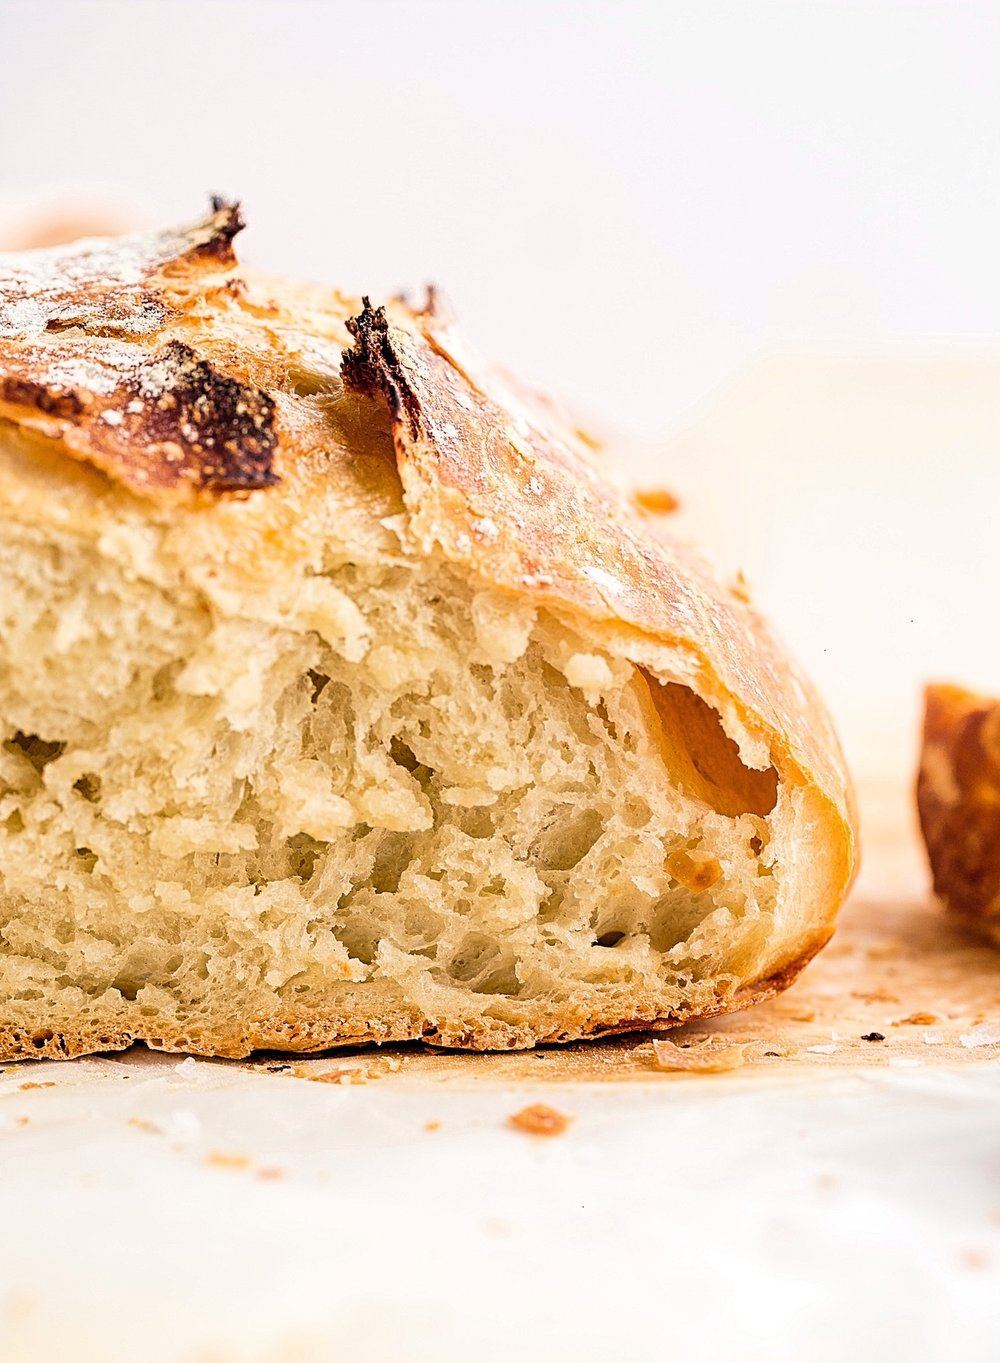 Crusty No Knead Bread: crusty and crispy on the outside, soft and doughy on the inside. 4 ingredients and 3 minutes to make! | TrufflesandTrends.com